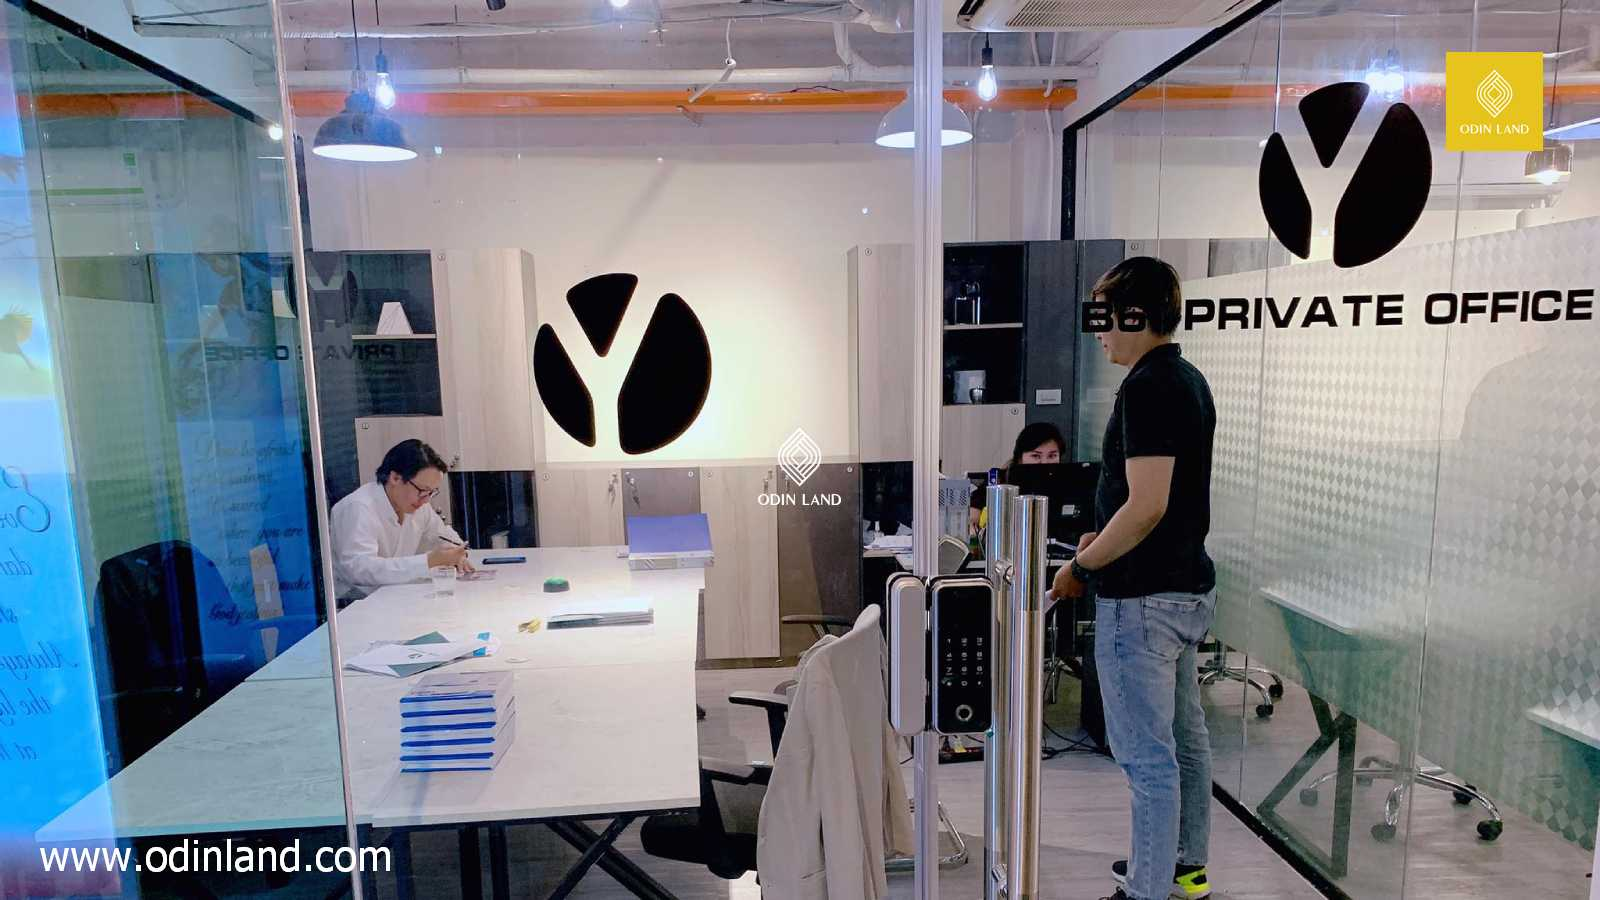 Van Phong Chia Se Yes Office Coworking Space (21)